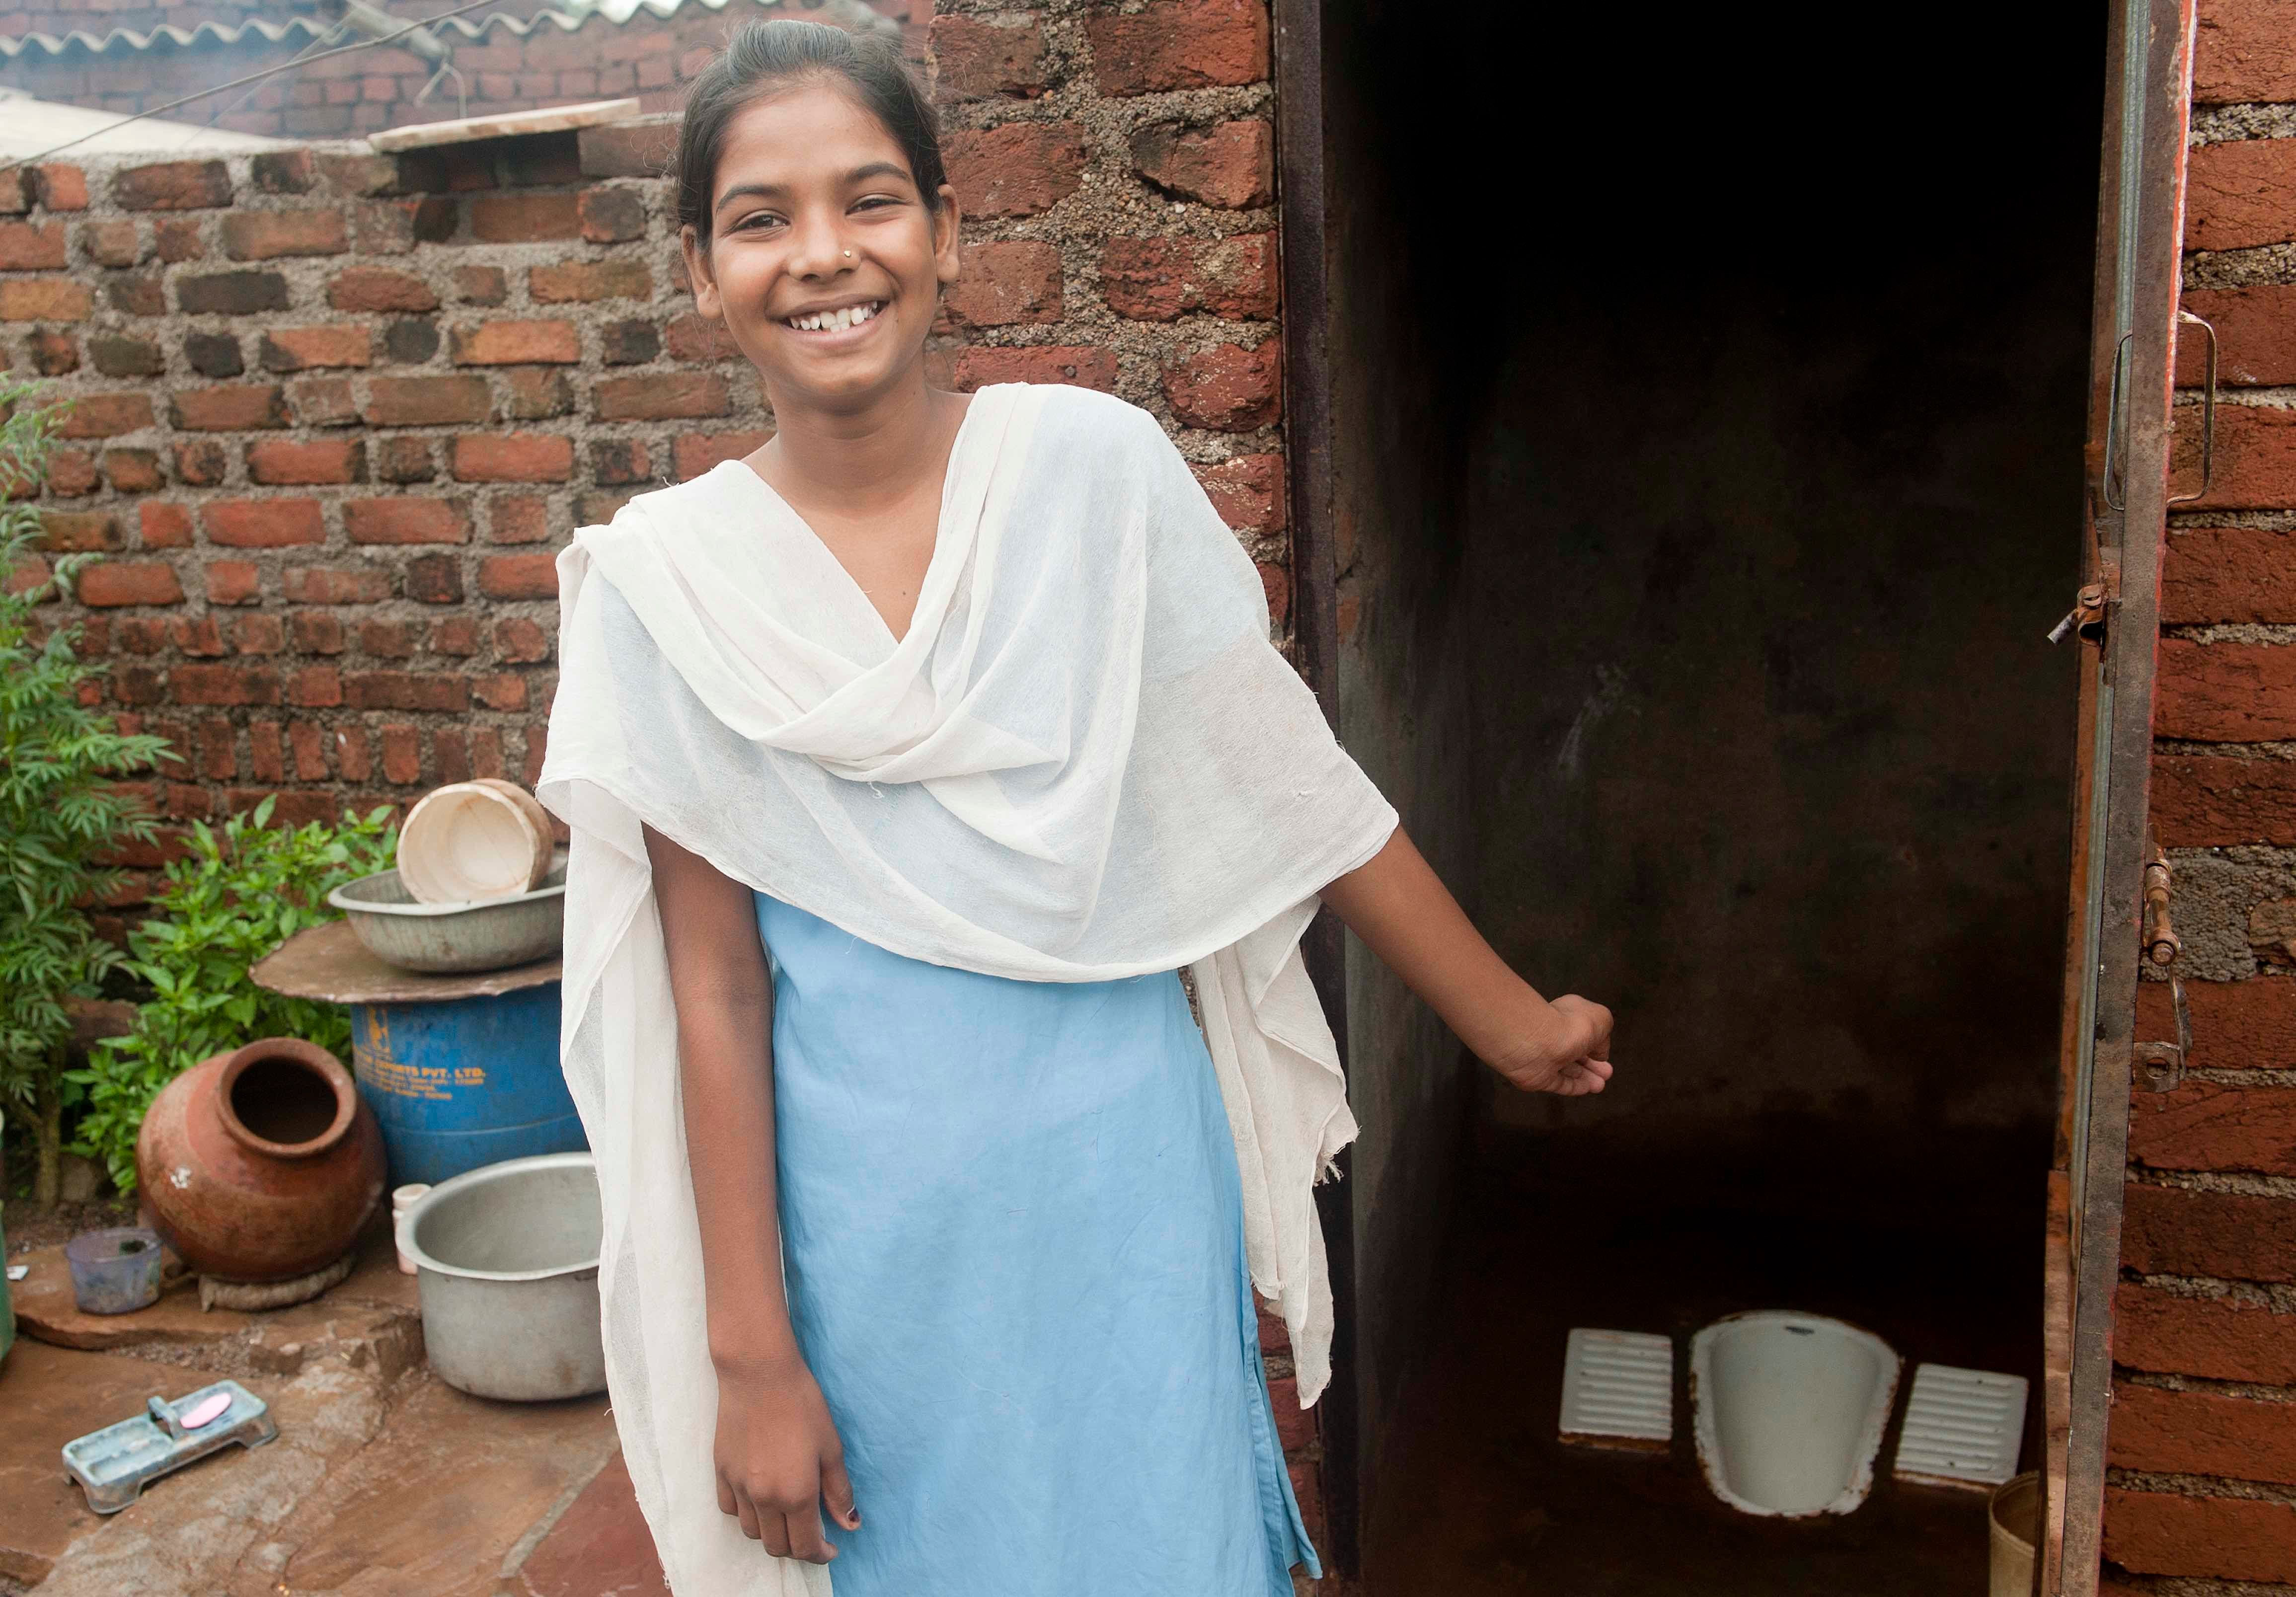 Tulsi Prajapati shows the toilet in her house in village Haripur, district Guna in Madhya Pradesh. Despite being rich in natural resources like diamonds, Madhya Pradesh is more infamous for its poverty. It is home to around 50 million people who defecate in the open air without latrines (around 70% of its 72 million people). These people consequently do not have adequate hygiene, without soap and enough water to wash their hands after defecating. About 5% of the global total of open defecators can be found in this one Indian state alone. Madhya Pradesh is also home to some of the most undernourished children in India with 50% of under three's suffering from stunting (chronic malnutrition), an indicator of long-term persistent nutrition deprivation that lead to poor physical growth and brain development in children with tragic implications for child survival, growth and development. As much as 50% of malnutrition is caused not by a lack of food or poor diets, but due to poor water, poor sanitation facilities and unhygienic practices - like not washing hands properly with soap.  2.5 billion cases of diarrhoea in children under-five are recorded worldwide every year , and in India diarrhoea caused 2,12,000 child deaths in 2010 alone. Moreover, many people do not recognise diarrhoea as a problem; because it is so recurrent it is thought to be normal, and they do not seek help. These numbers are therefore likely to be under reported.  UNICEF India/ 2013/ Manpreet Romana